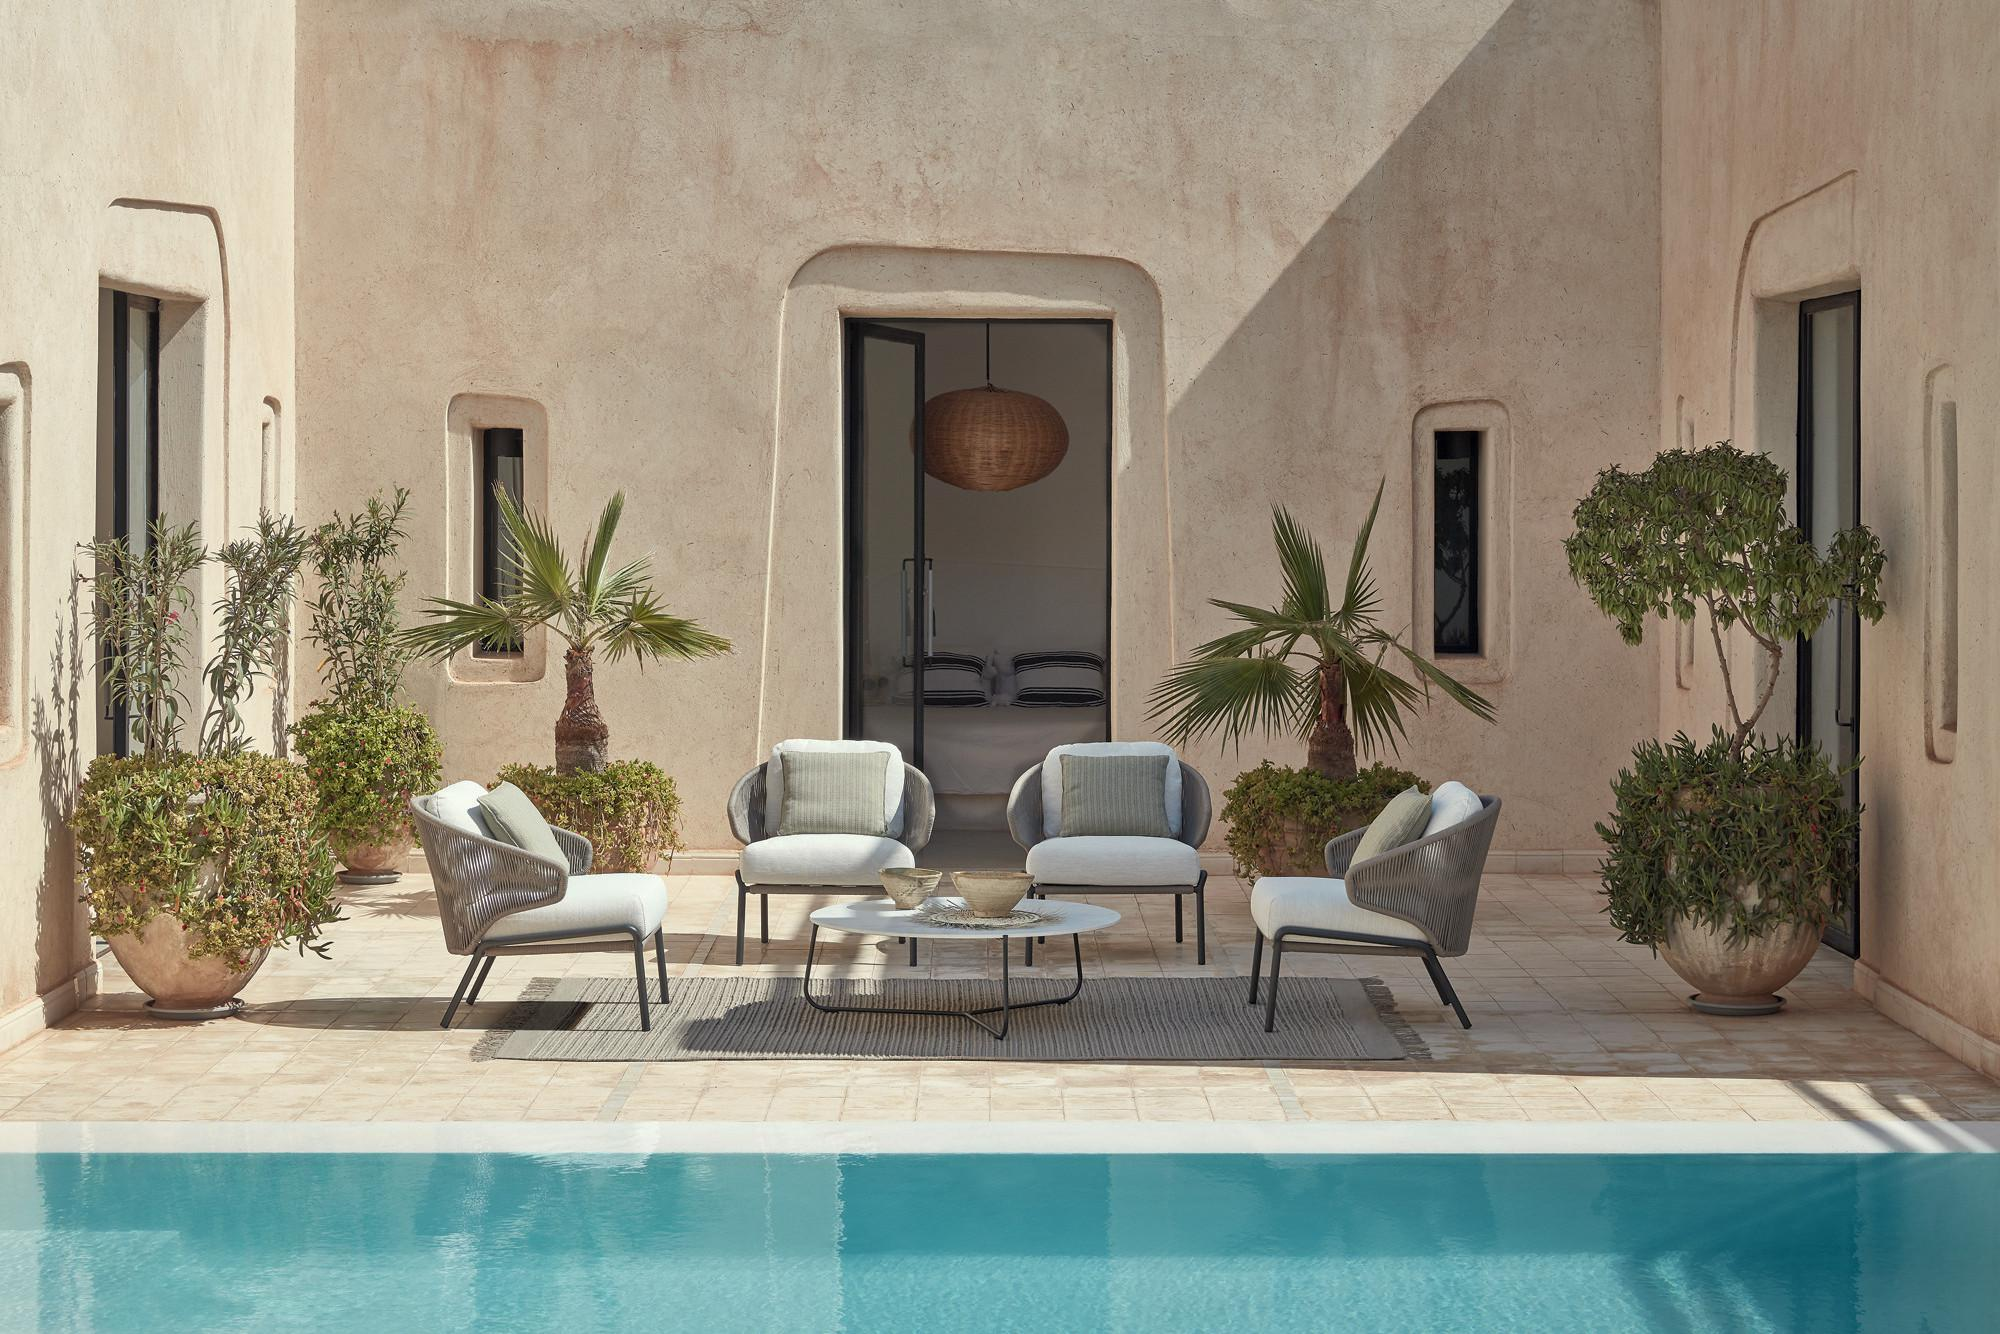 Radius lounge chairs with Mood side table on small terrace